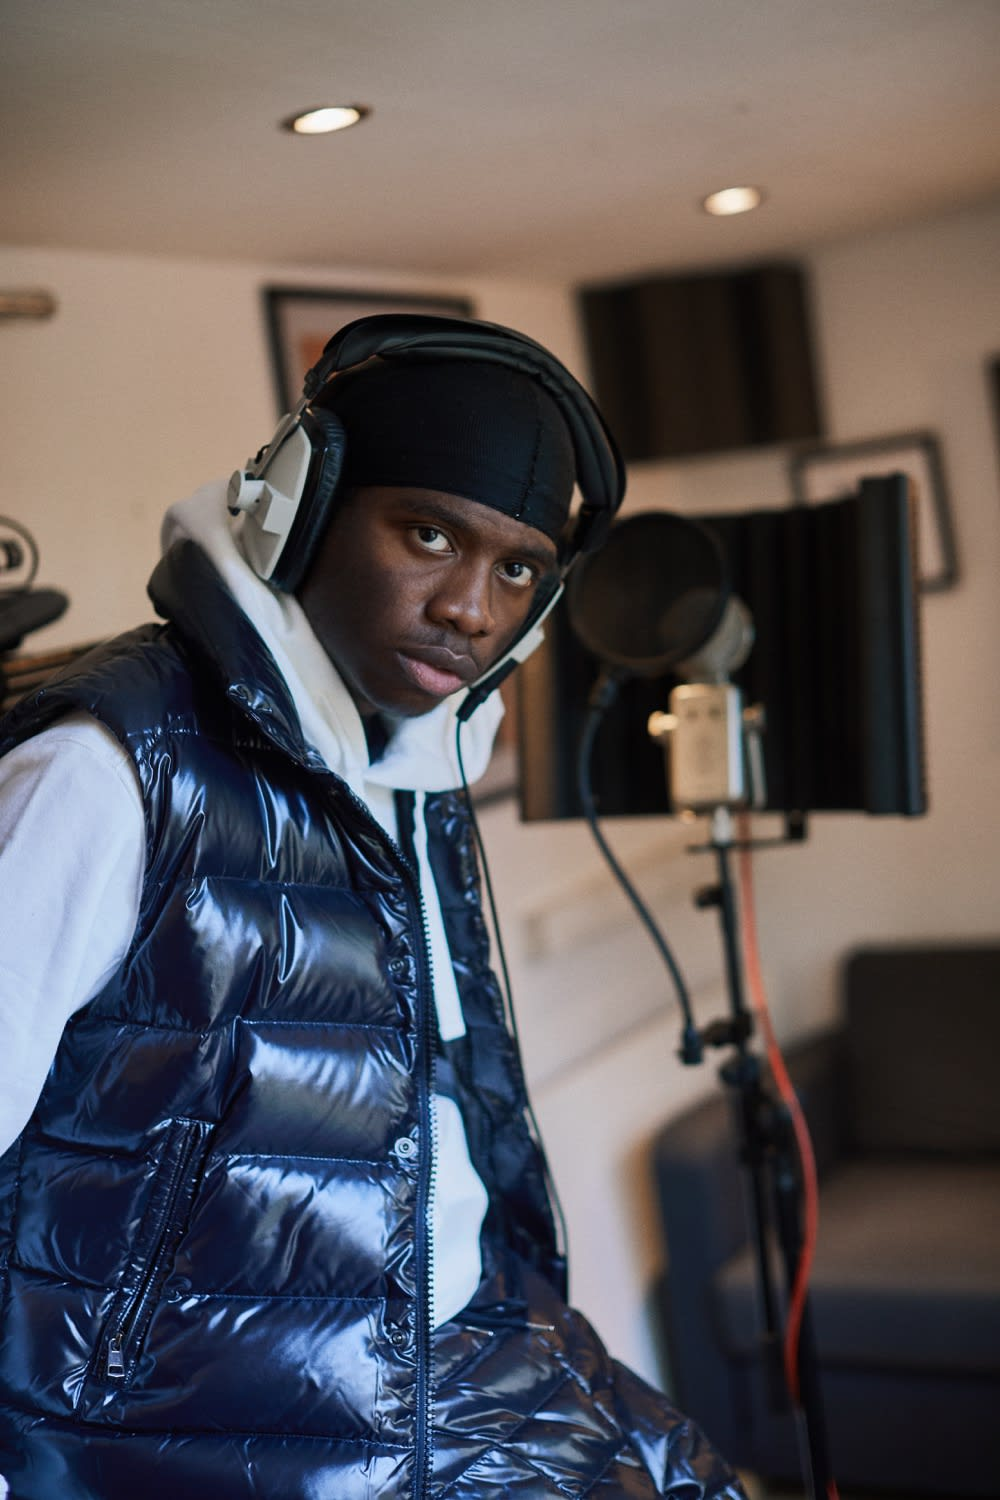 London musician Master Peace recording vocals at his home studio.